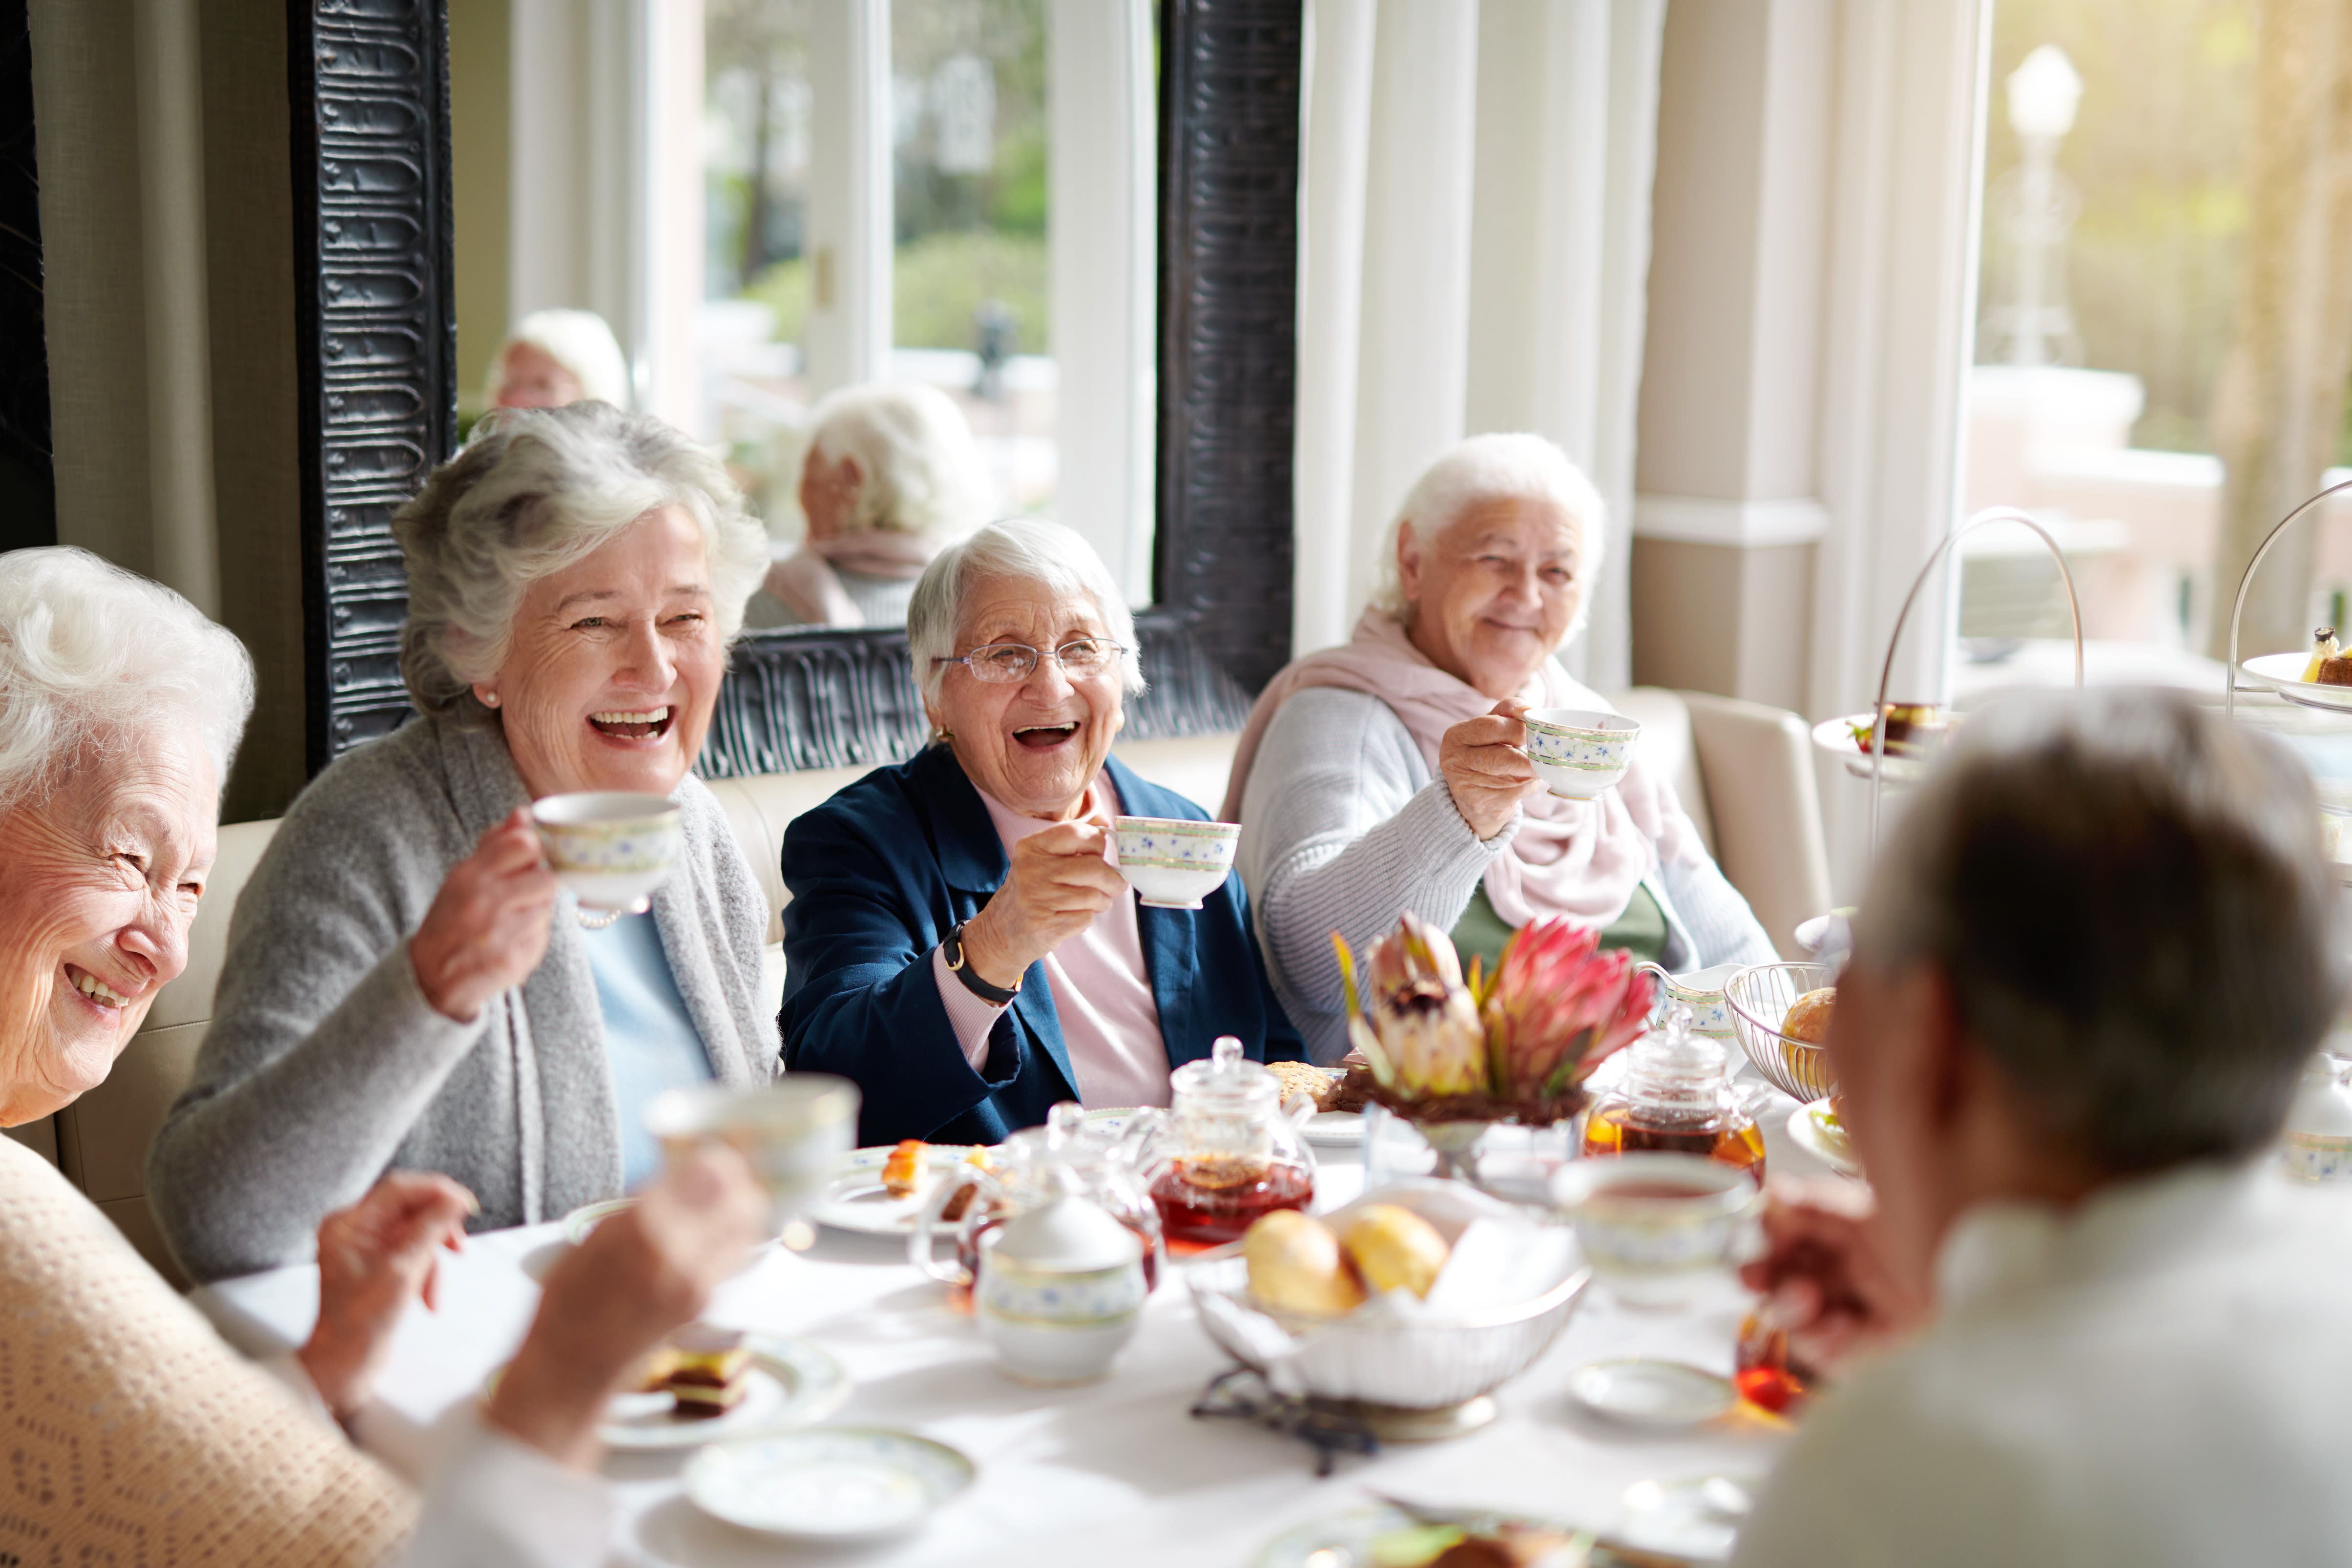 Residents having tea together at The Chamberlin in Hampton, Virginia